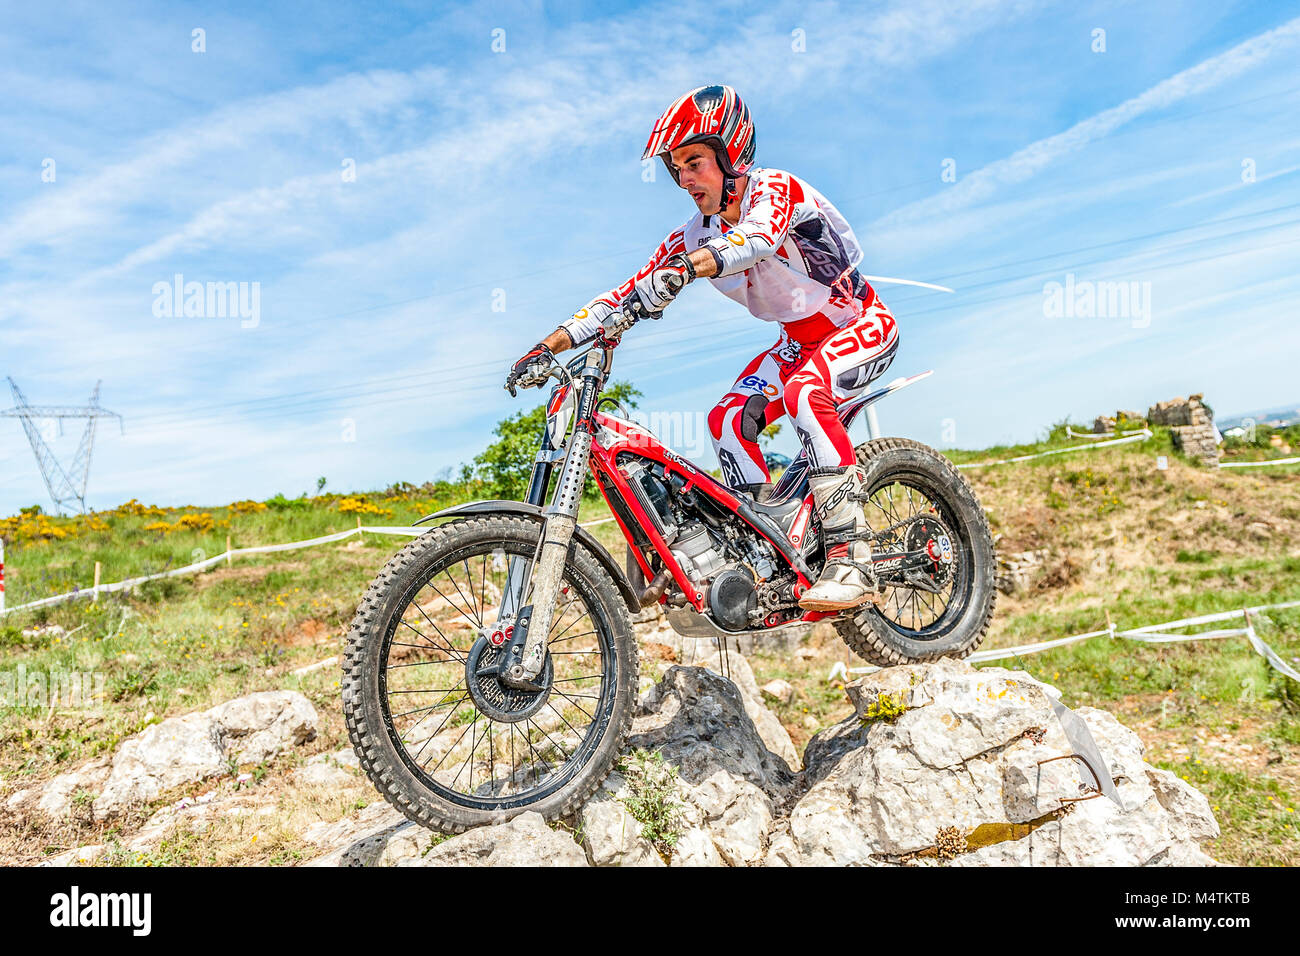 Trials motorbike rider tackles the rocks during the Portugal National Championships in Torres Vedras, Portugal. - Stock Image